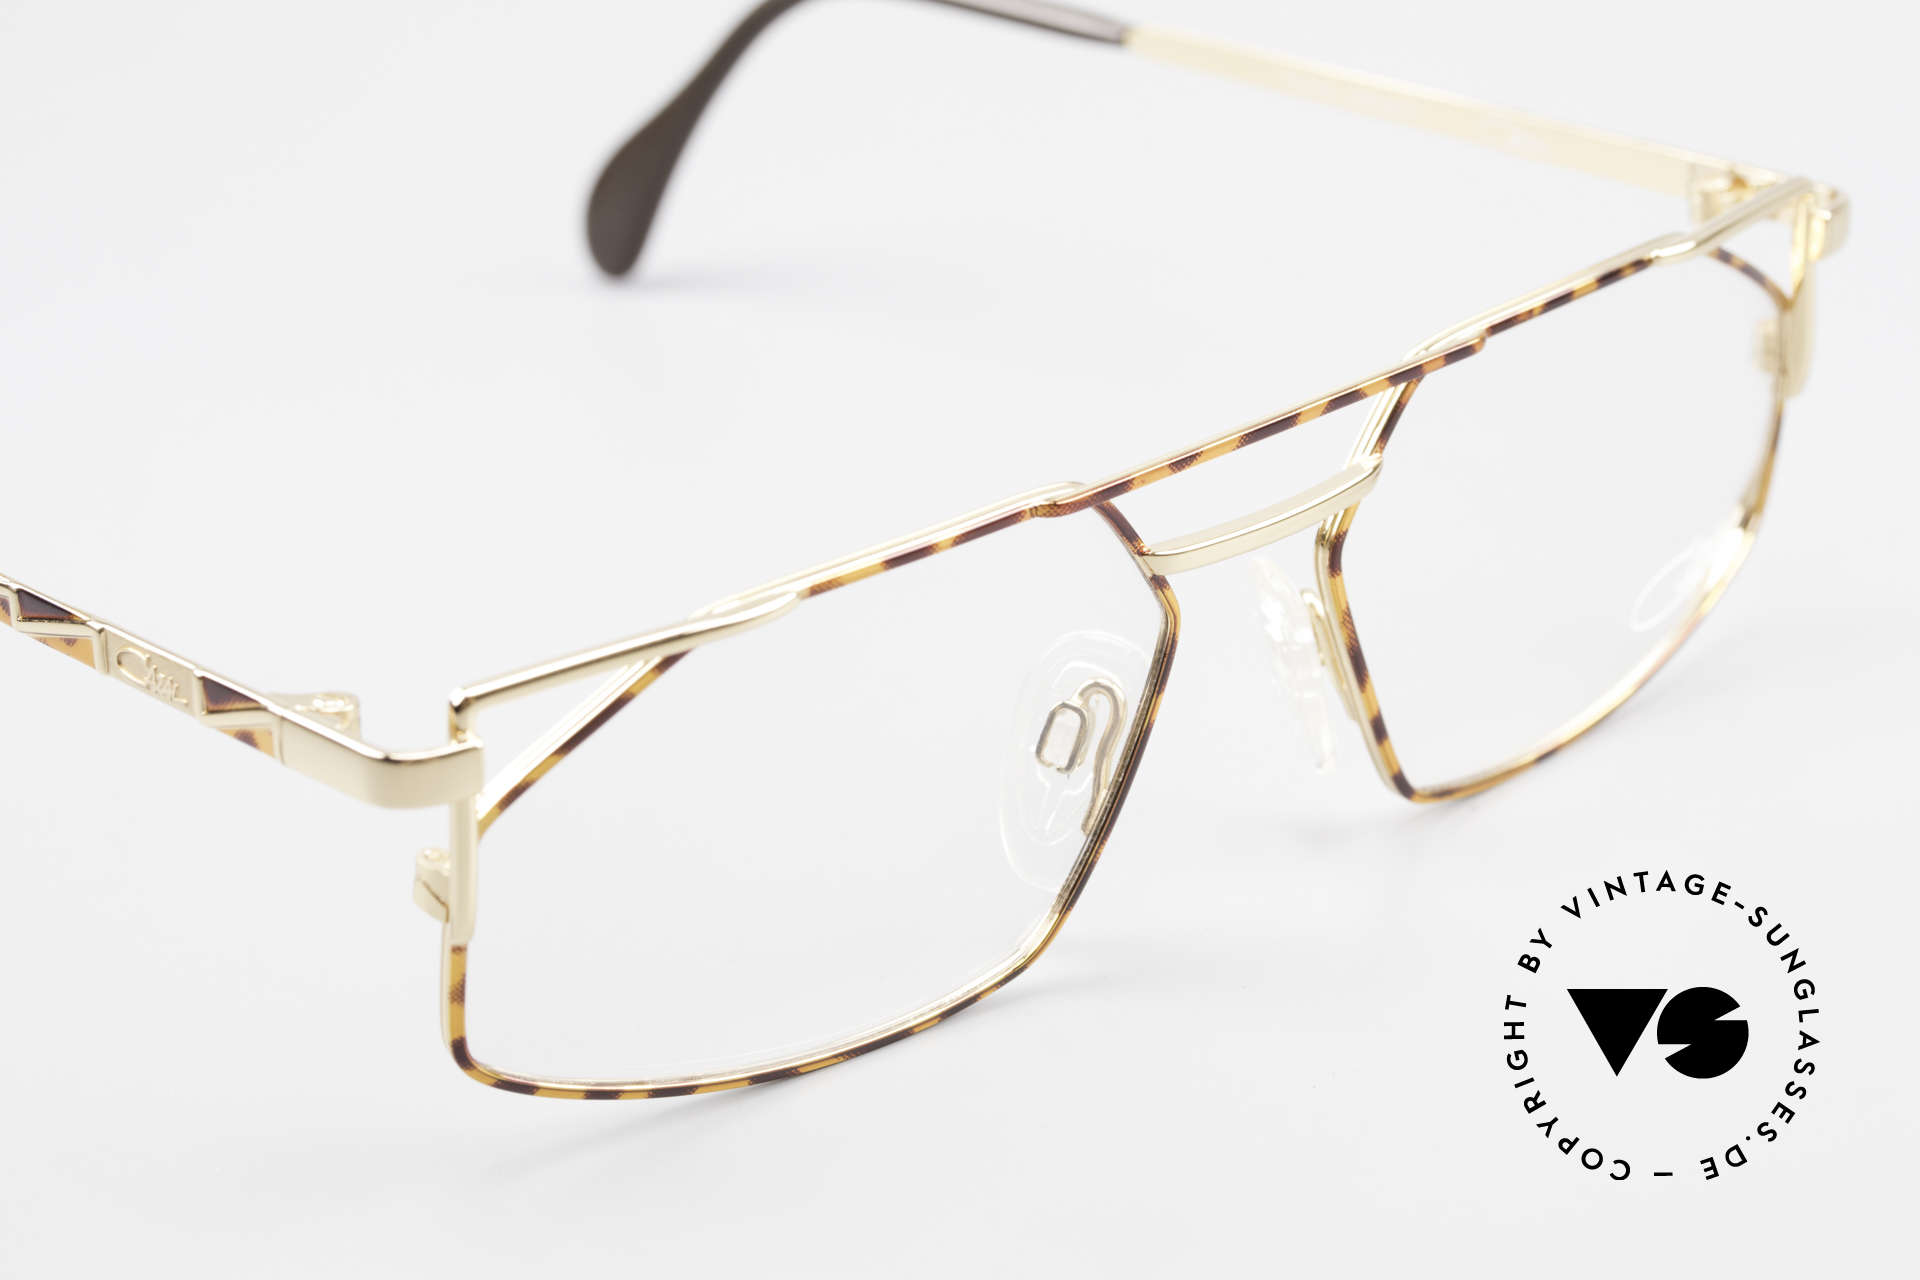 Cazal 751 90's Designer Eyeglasses, NO RETRO glasses, but a rare old 1990's ORIGINAL!, Made for Men